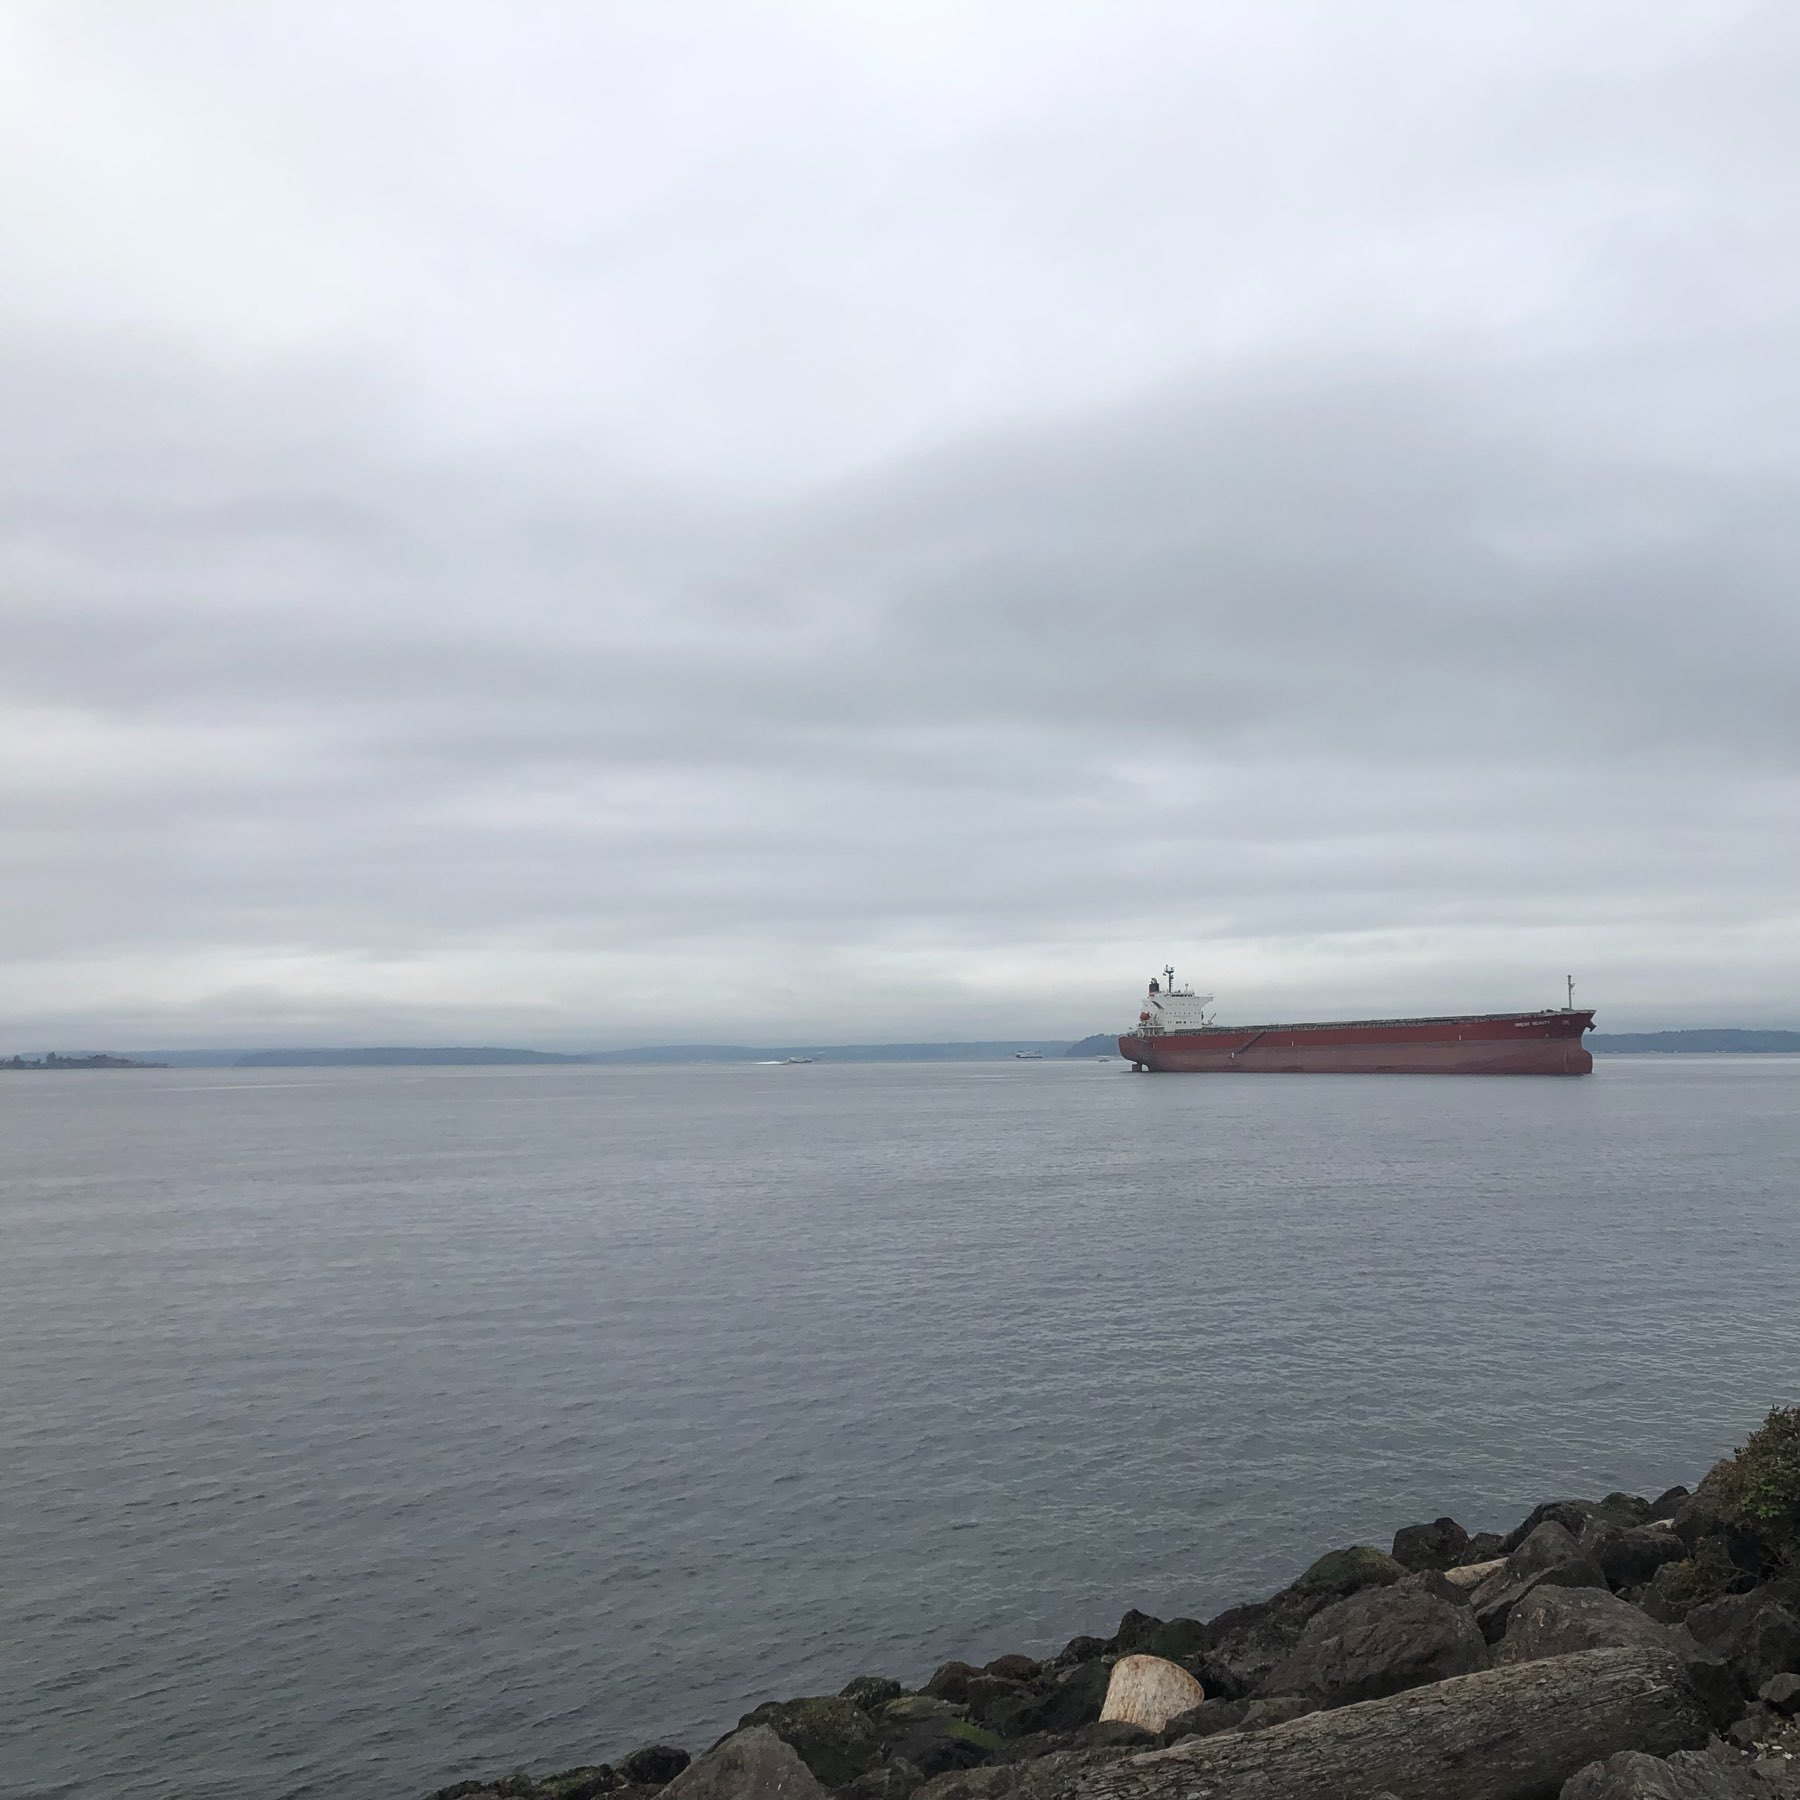 A low red barge floats on a gray and gloomy Elliott Bay.